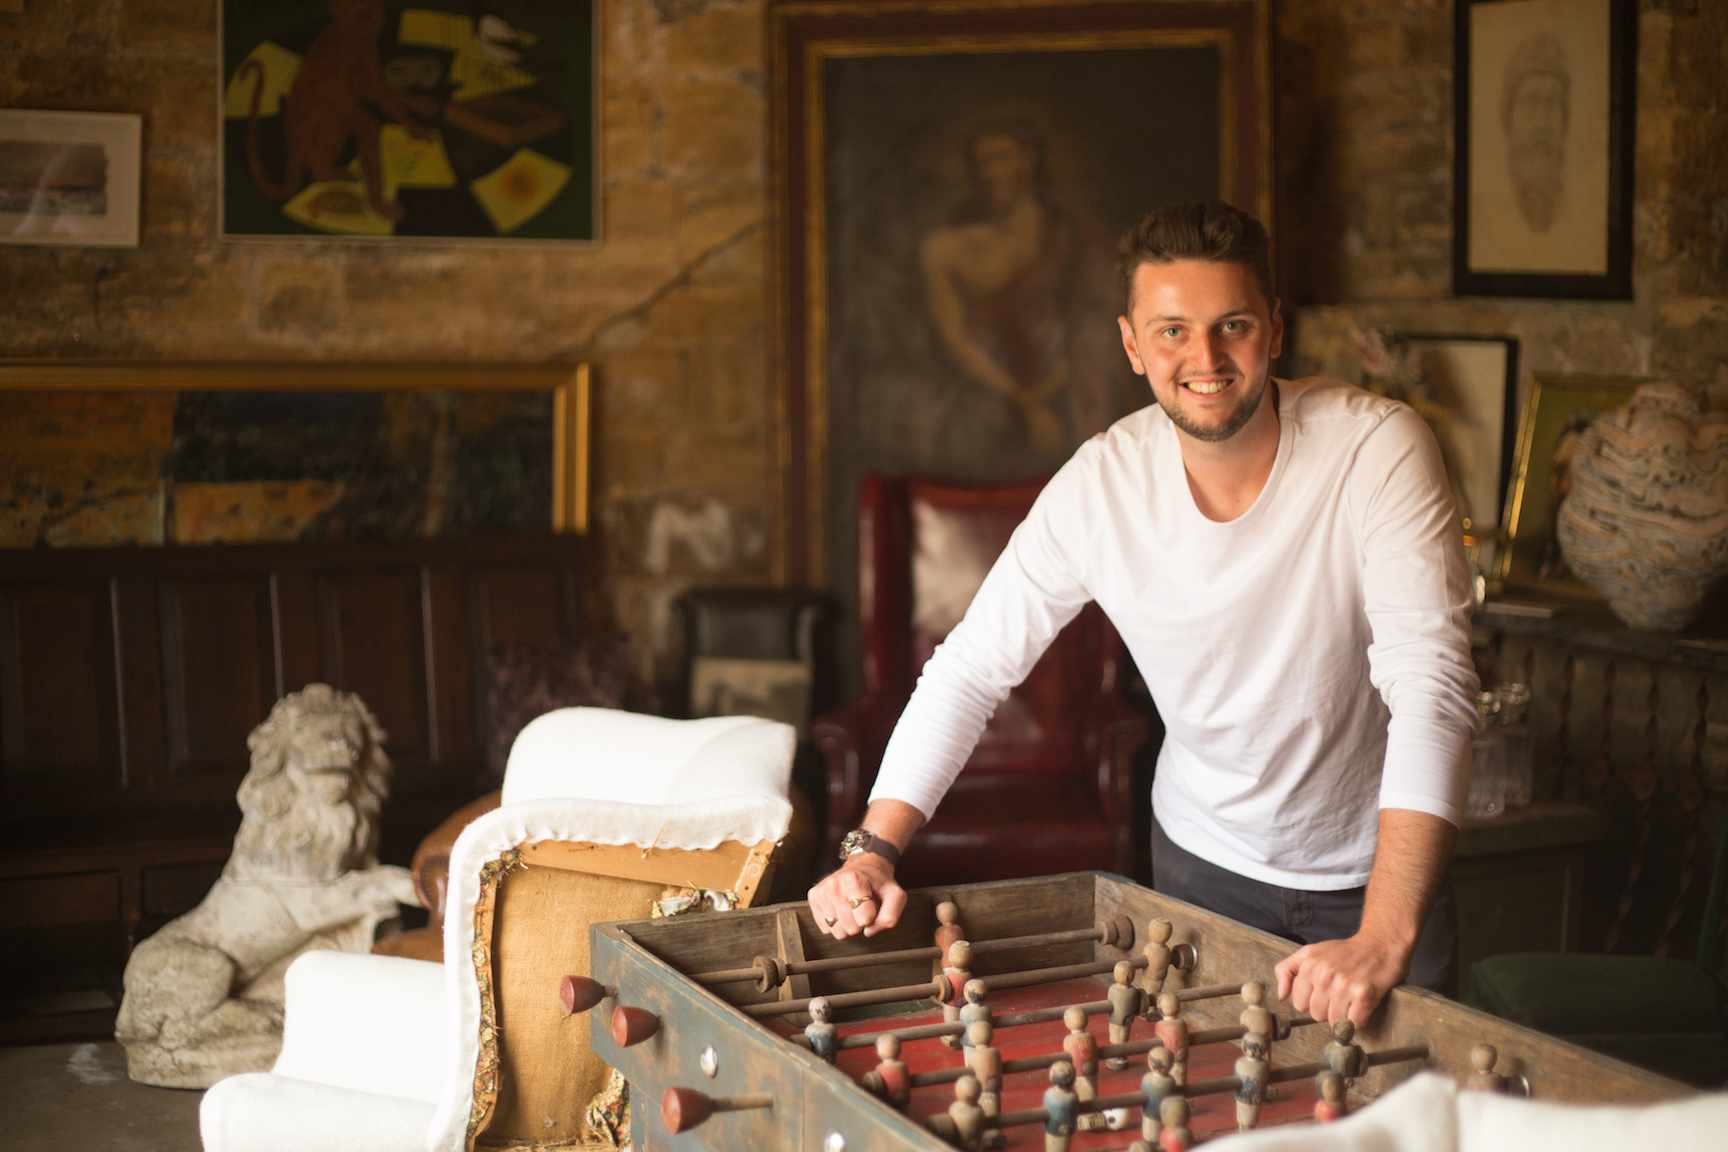 Antiques dealer Max Dixon alongside a vintage football table in his showroom